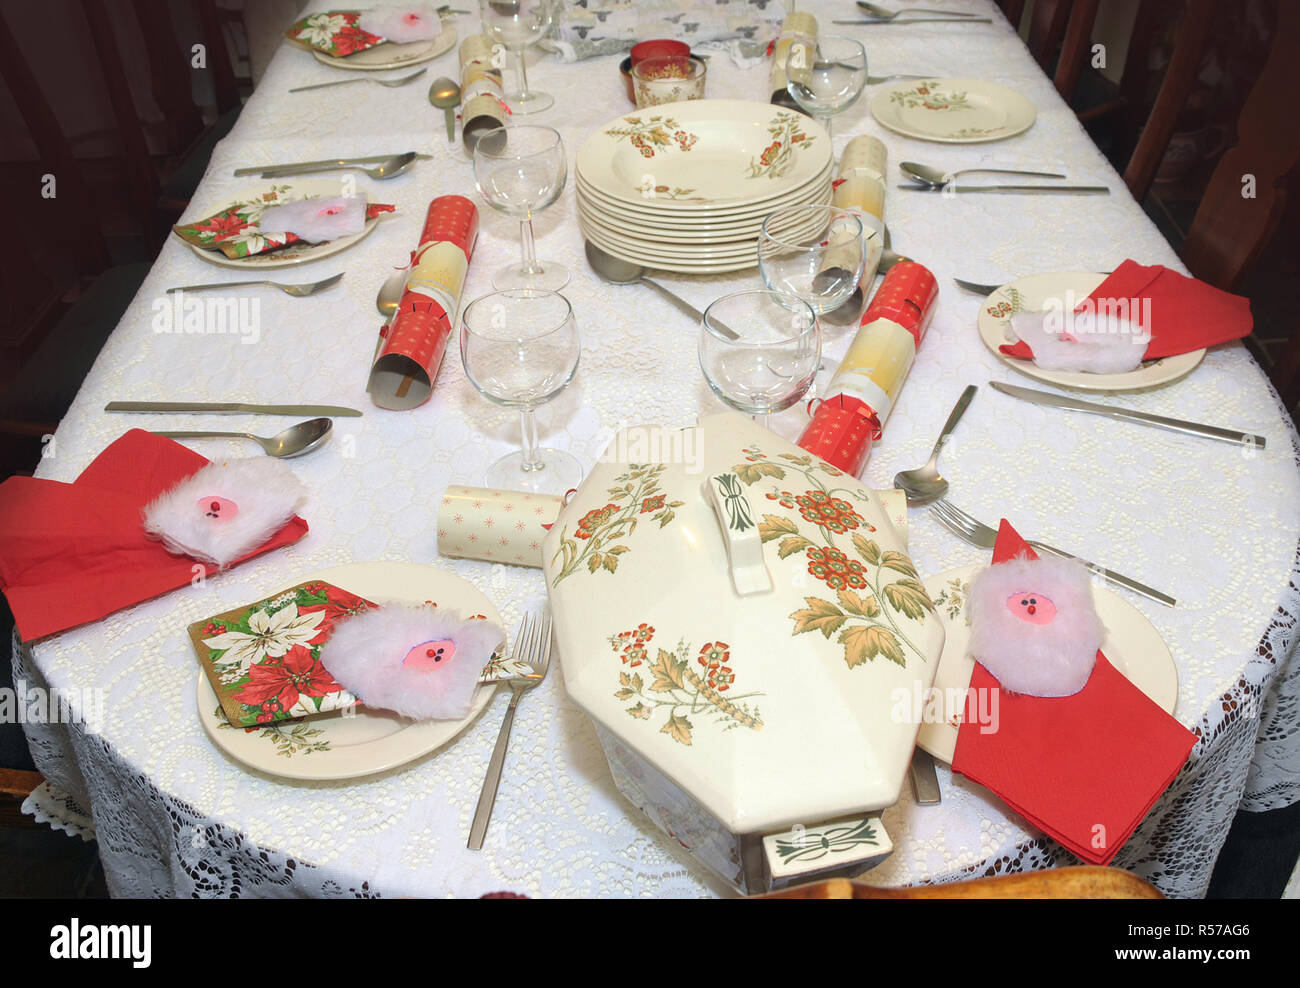 Traditional Christmas decor dinner table setting before meal. - Stock Image